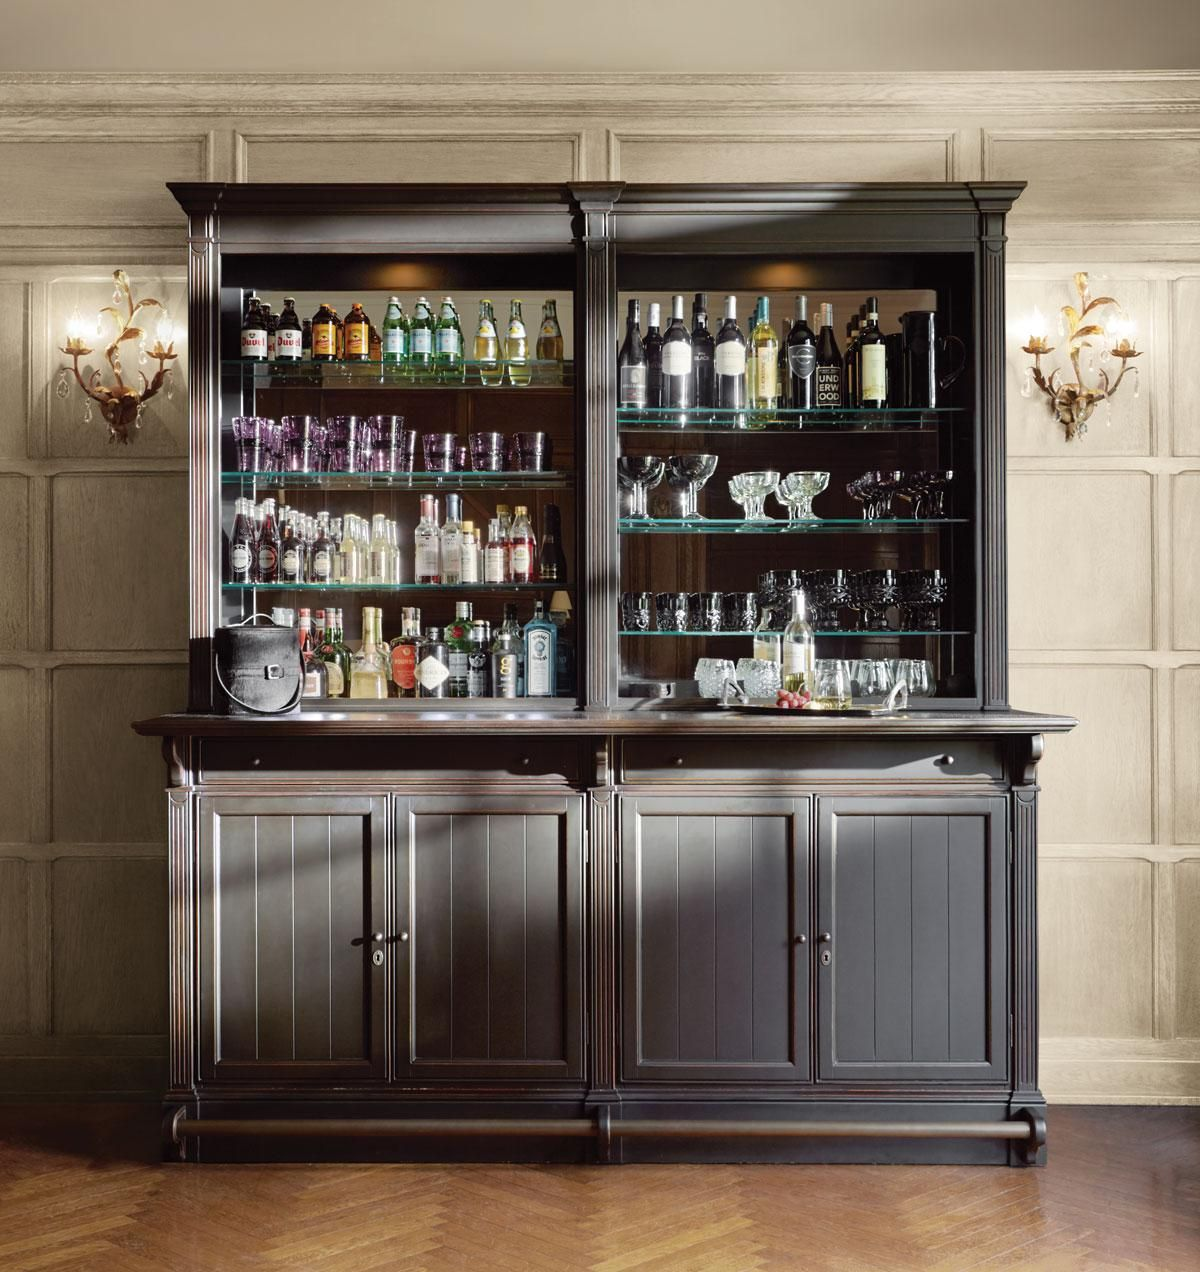 Entertainment Bar Furniture: Designed For Everything You Need When Entertaining. The